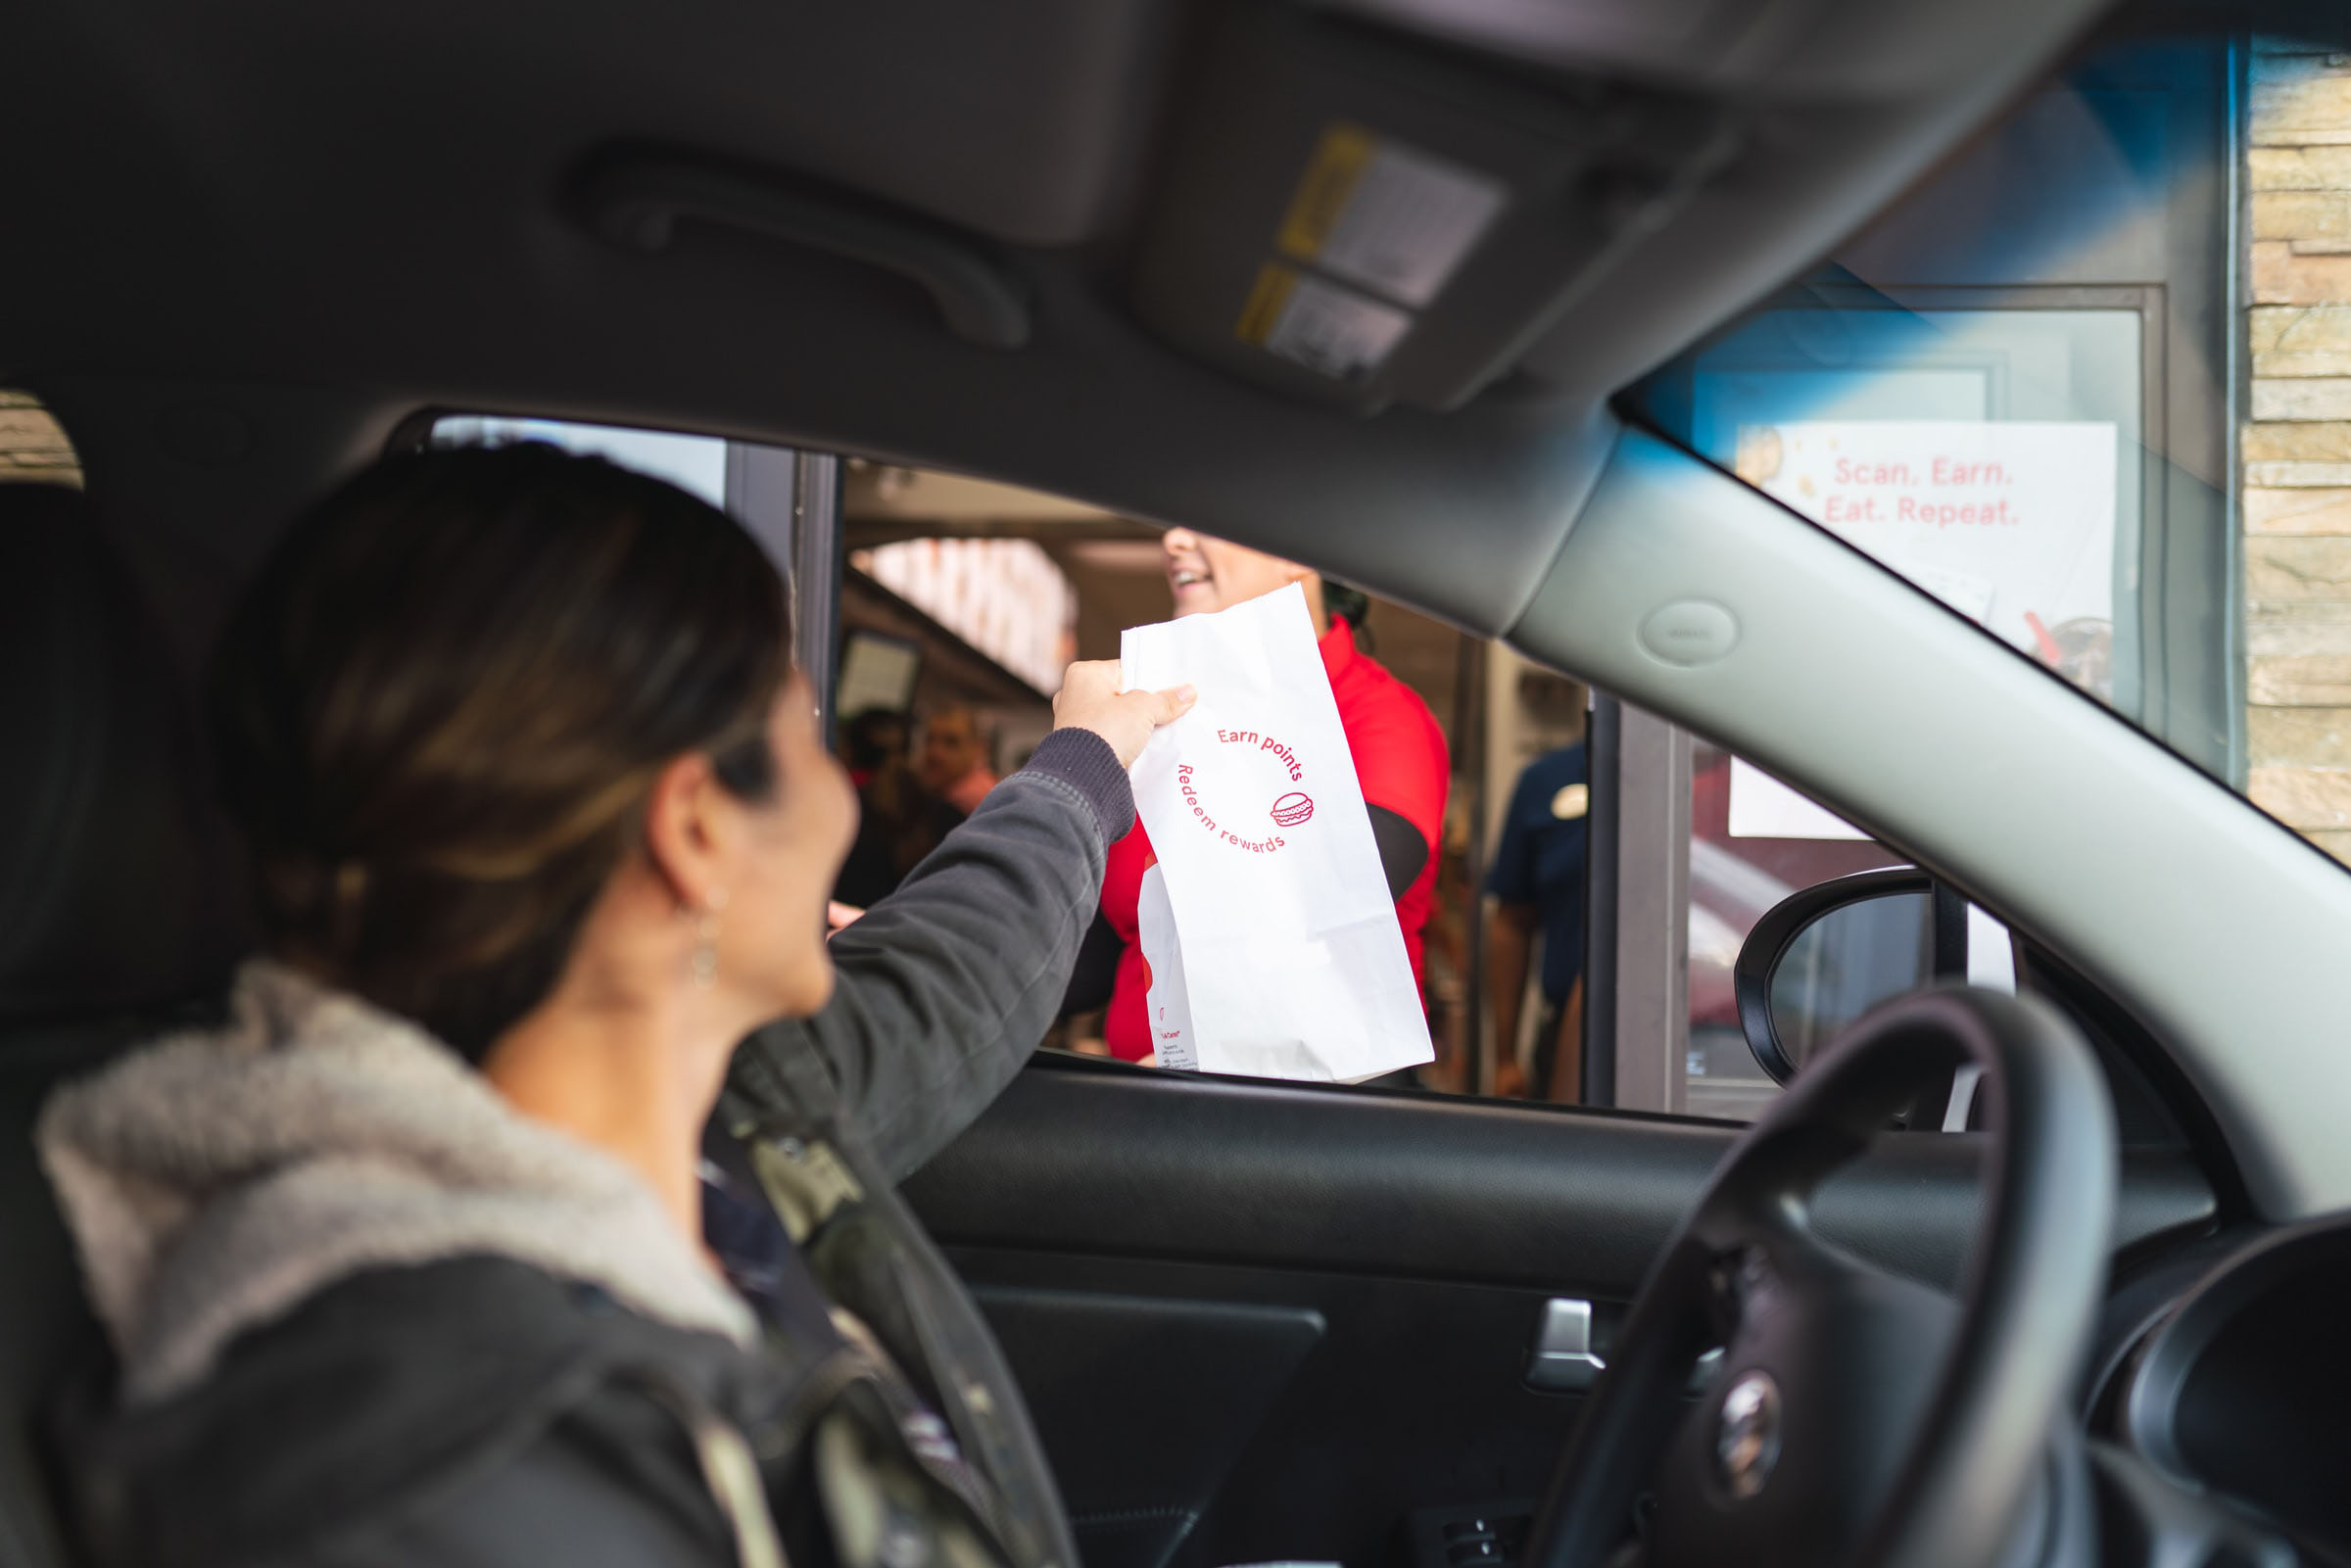 Woman in car picking up order from drive thru window